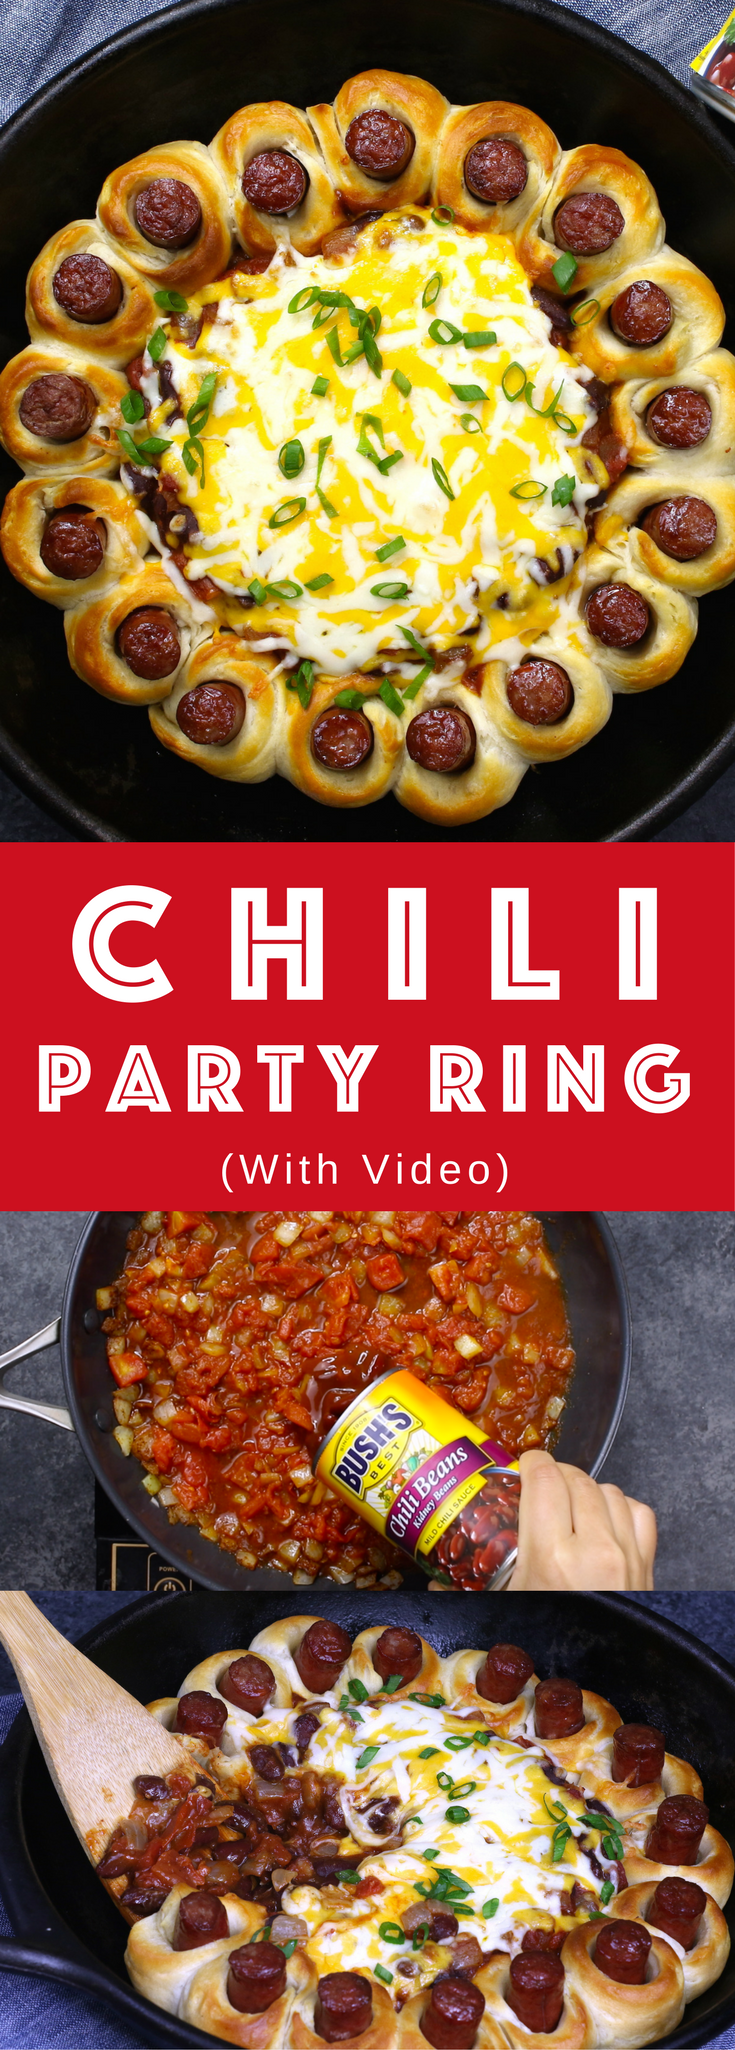 Chili Party Ring – the most delicious appetizer to share at your next party. Easy to make in only 30 minutes with a few simple ingredients: biscuit dough, your favorite wieners, onions, chili powder, cumin, Hunt's Tomatoes, BUSH's slow-simmered chili beans, shredded cheese and green onions. So good. Video recipe. #AD